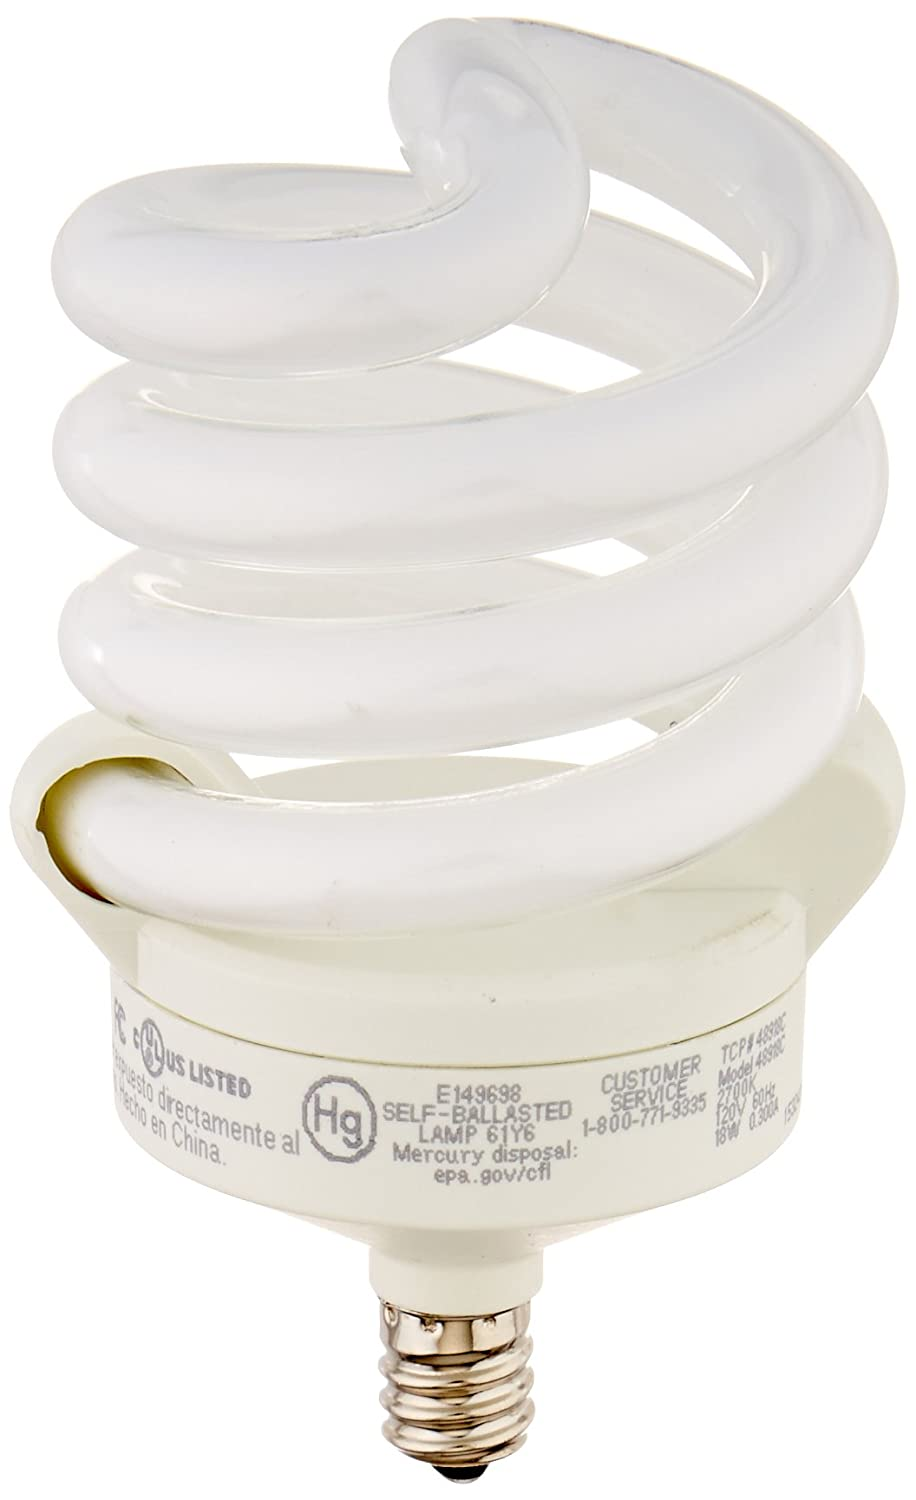 Tcp cfl 75w equivalent soft white 2700k full springlamp tcp cfl 75w equivalent soft white 2700k full springlamp candelabra base spiral light bulb compact fluorescent bulbs amazon arubaitofo Image collections